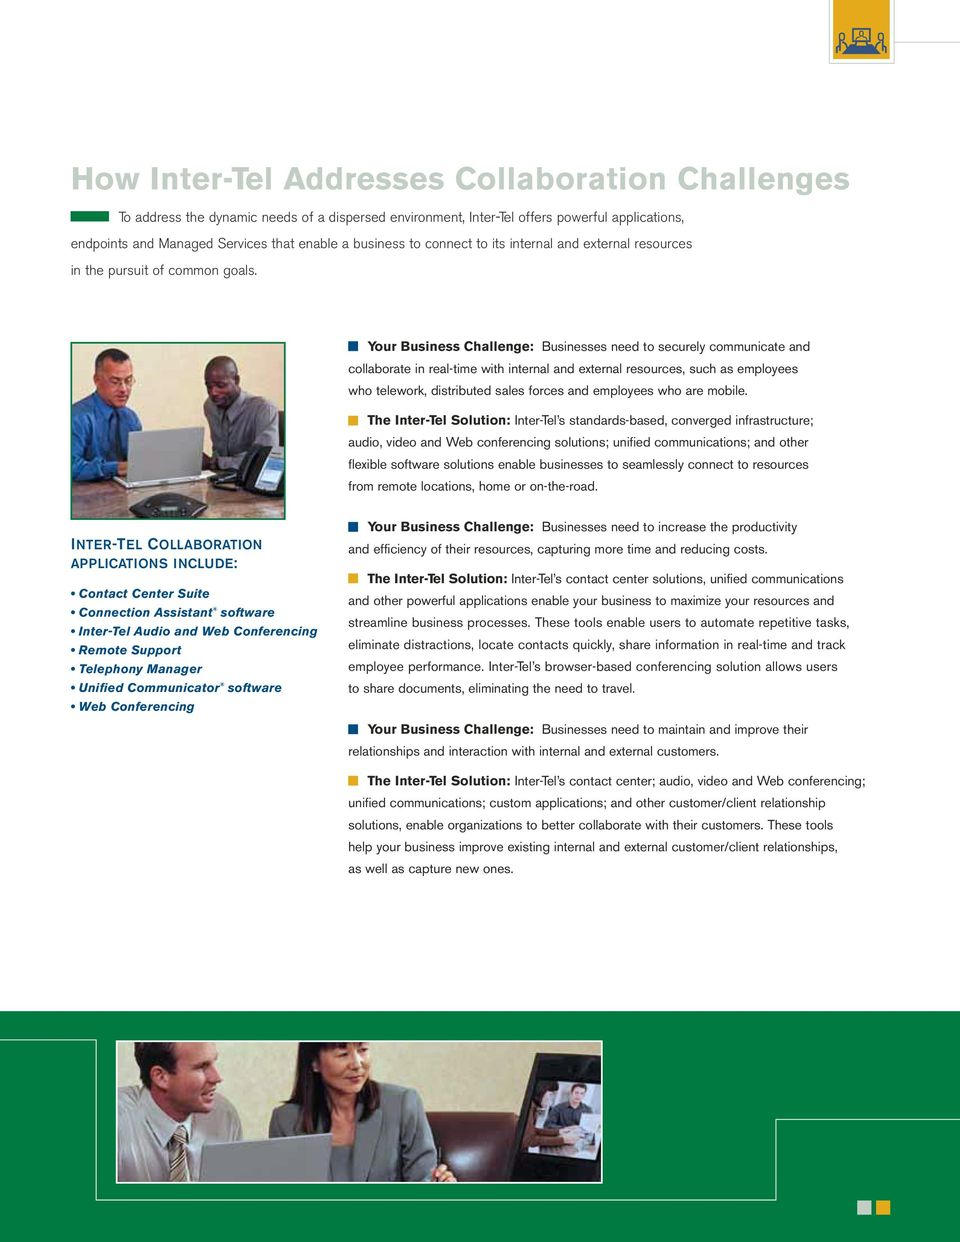 Your Business Challenge: Businesses need to securely communicate and collaborate in real-time with internal and external resources, such as employees who telework, distributed sales forces and